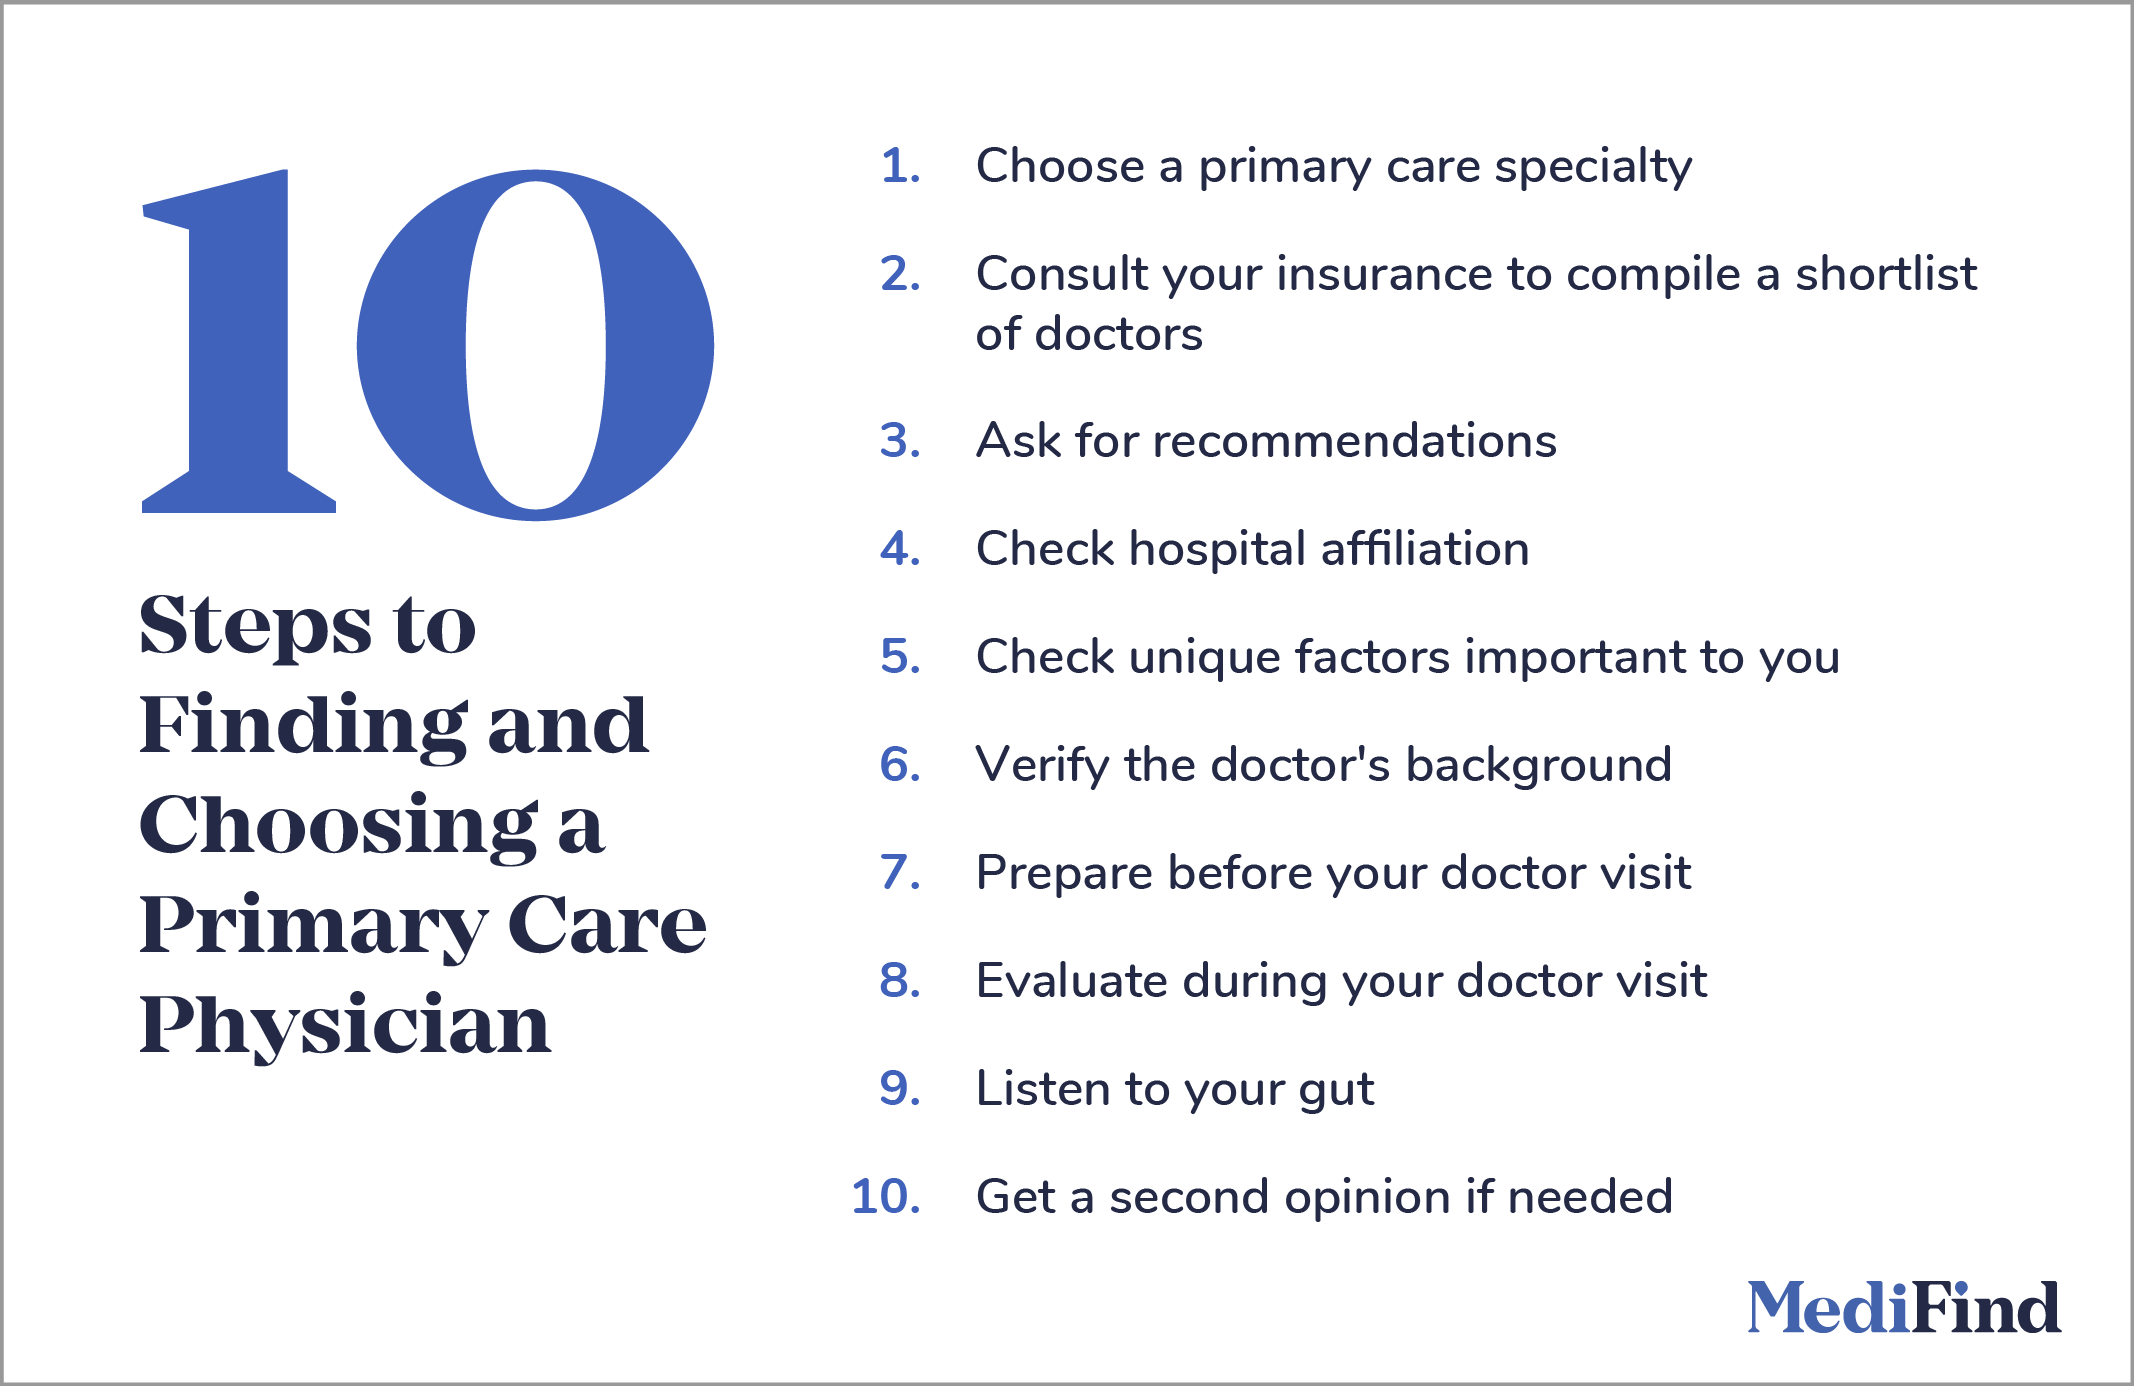 10 Steps to Finding and Choosing a Primary Care Physician